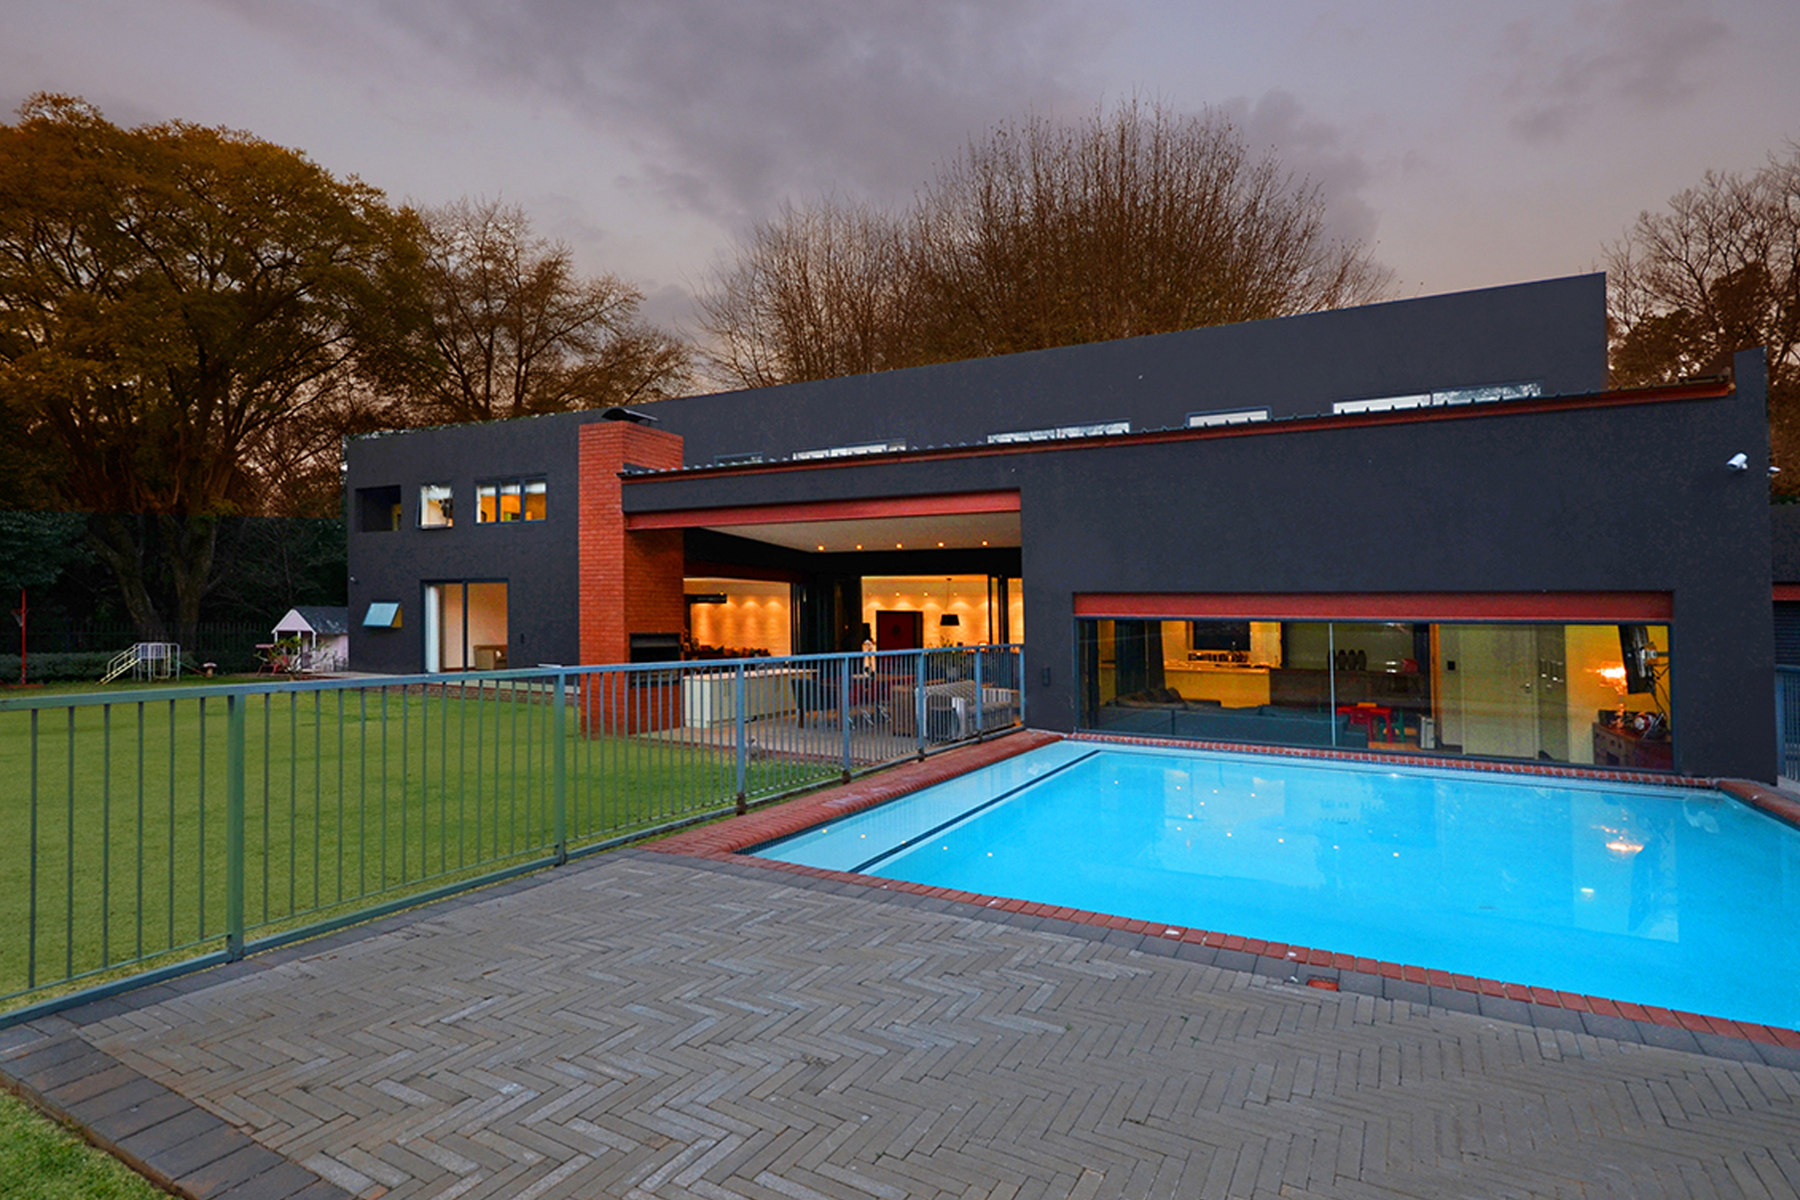 Single Family Home for Sale at Stoneway, Linksfield Johannesburg, Gauteng 2007 South Africa